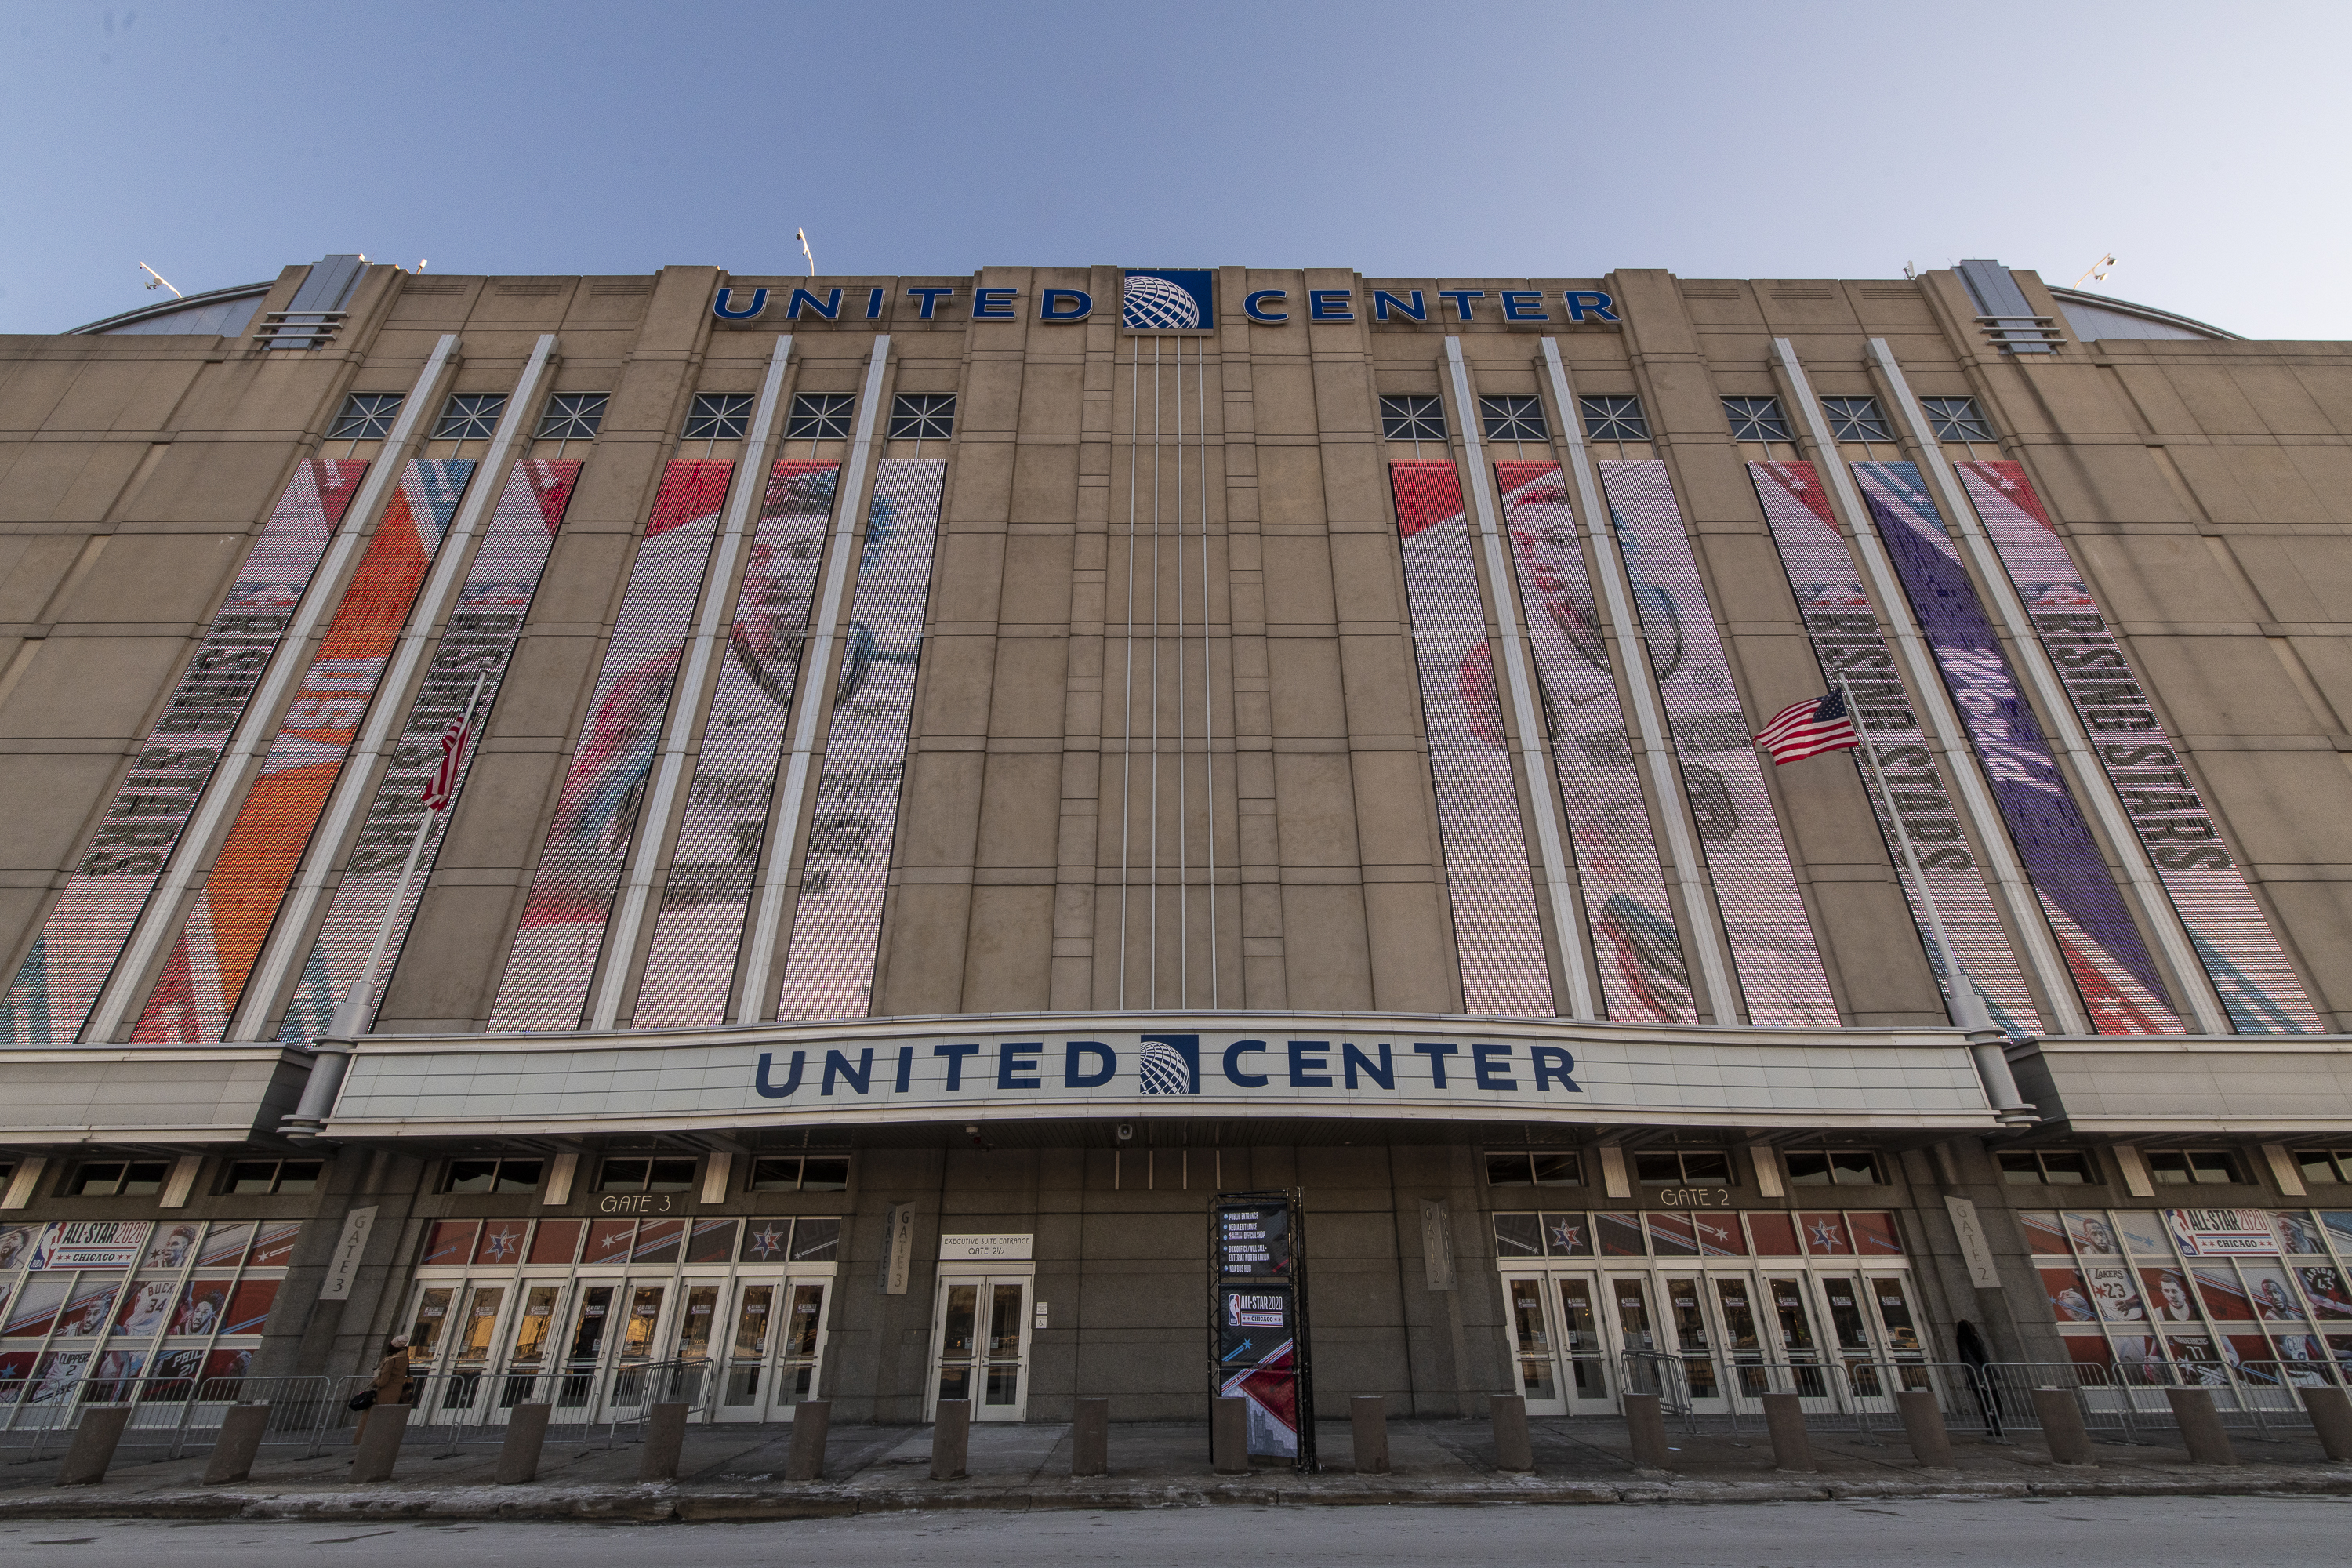 The exterior of the United Center in Chicago